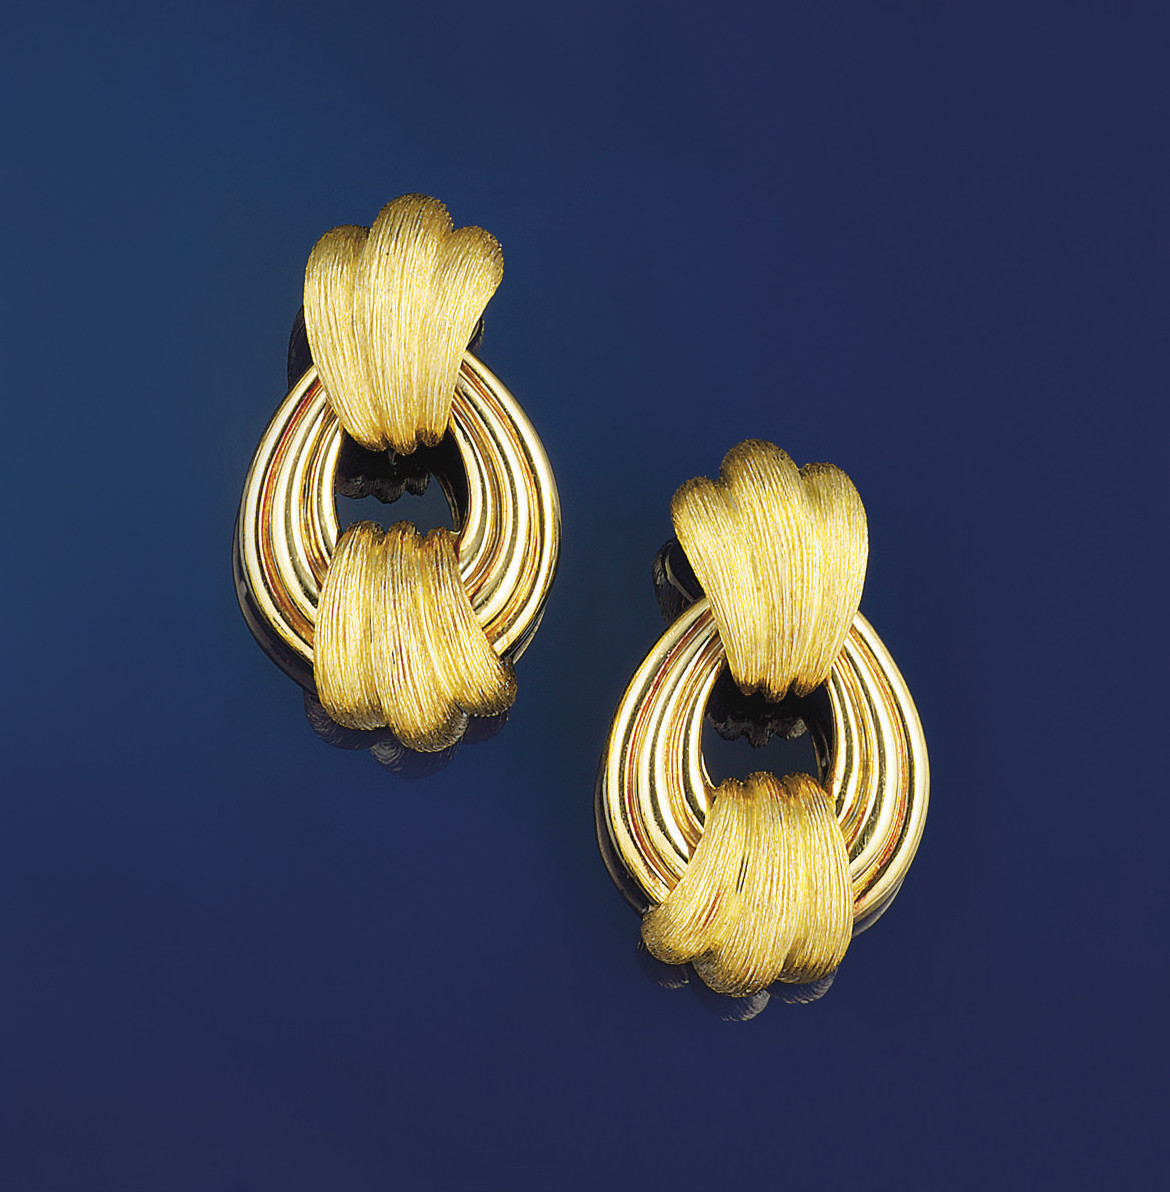 A pair of earpendants